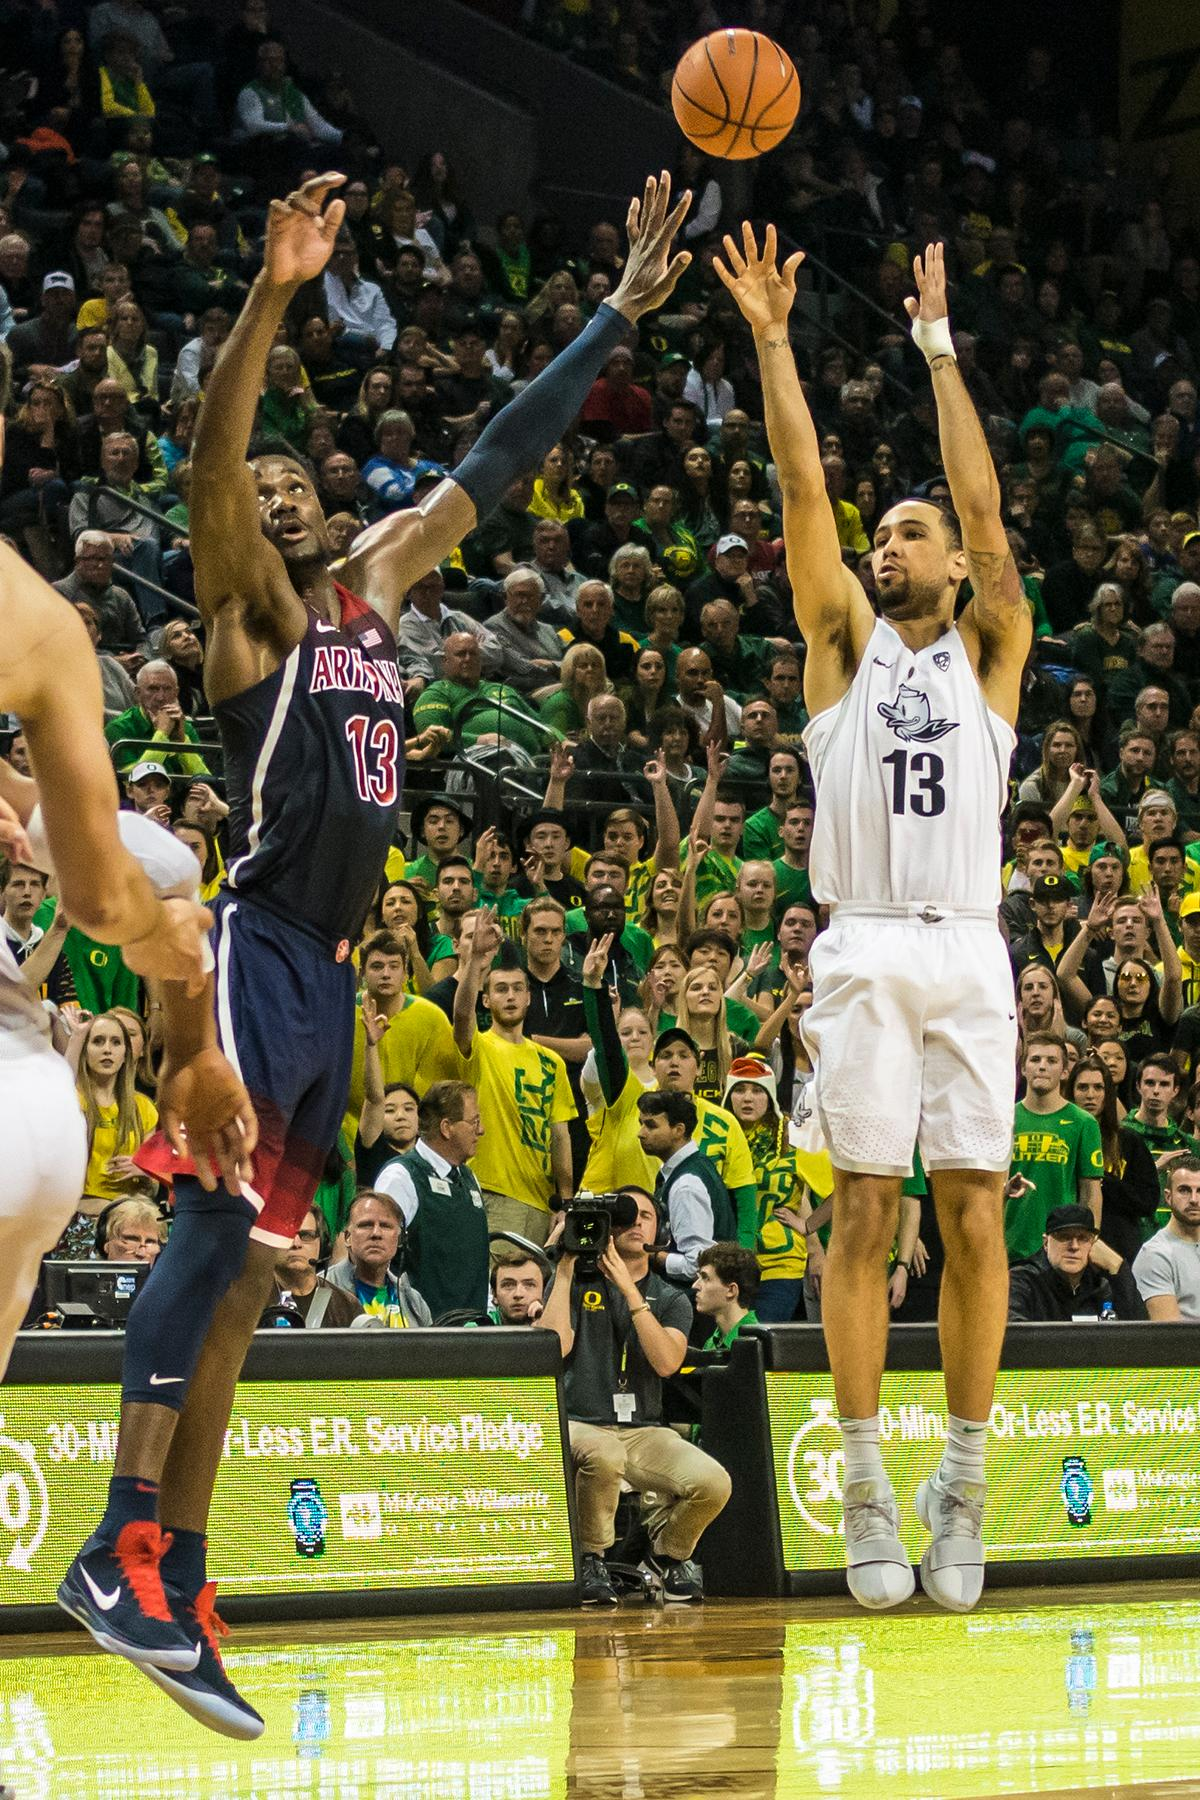 Oregon's Paul White (13) shoots for three over Arizona's DeAdre Ayton (13) in their matchup at Matthew Knight Arena Saturday. The Ducks upset the fourteenth ranked Wildcats 98-93 in a stunning overtime win in front of a packed house of over 12,000 fans for their final home game to improve to a 19-10 (9-7 PAC-12) record on the season. Oregon will finish out regular season play on the road in Washington next week against Washington State on Thursday, then Washington on the following Saturday. (Photo by Colin Houck)